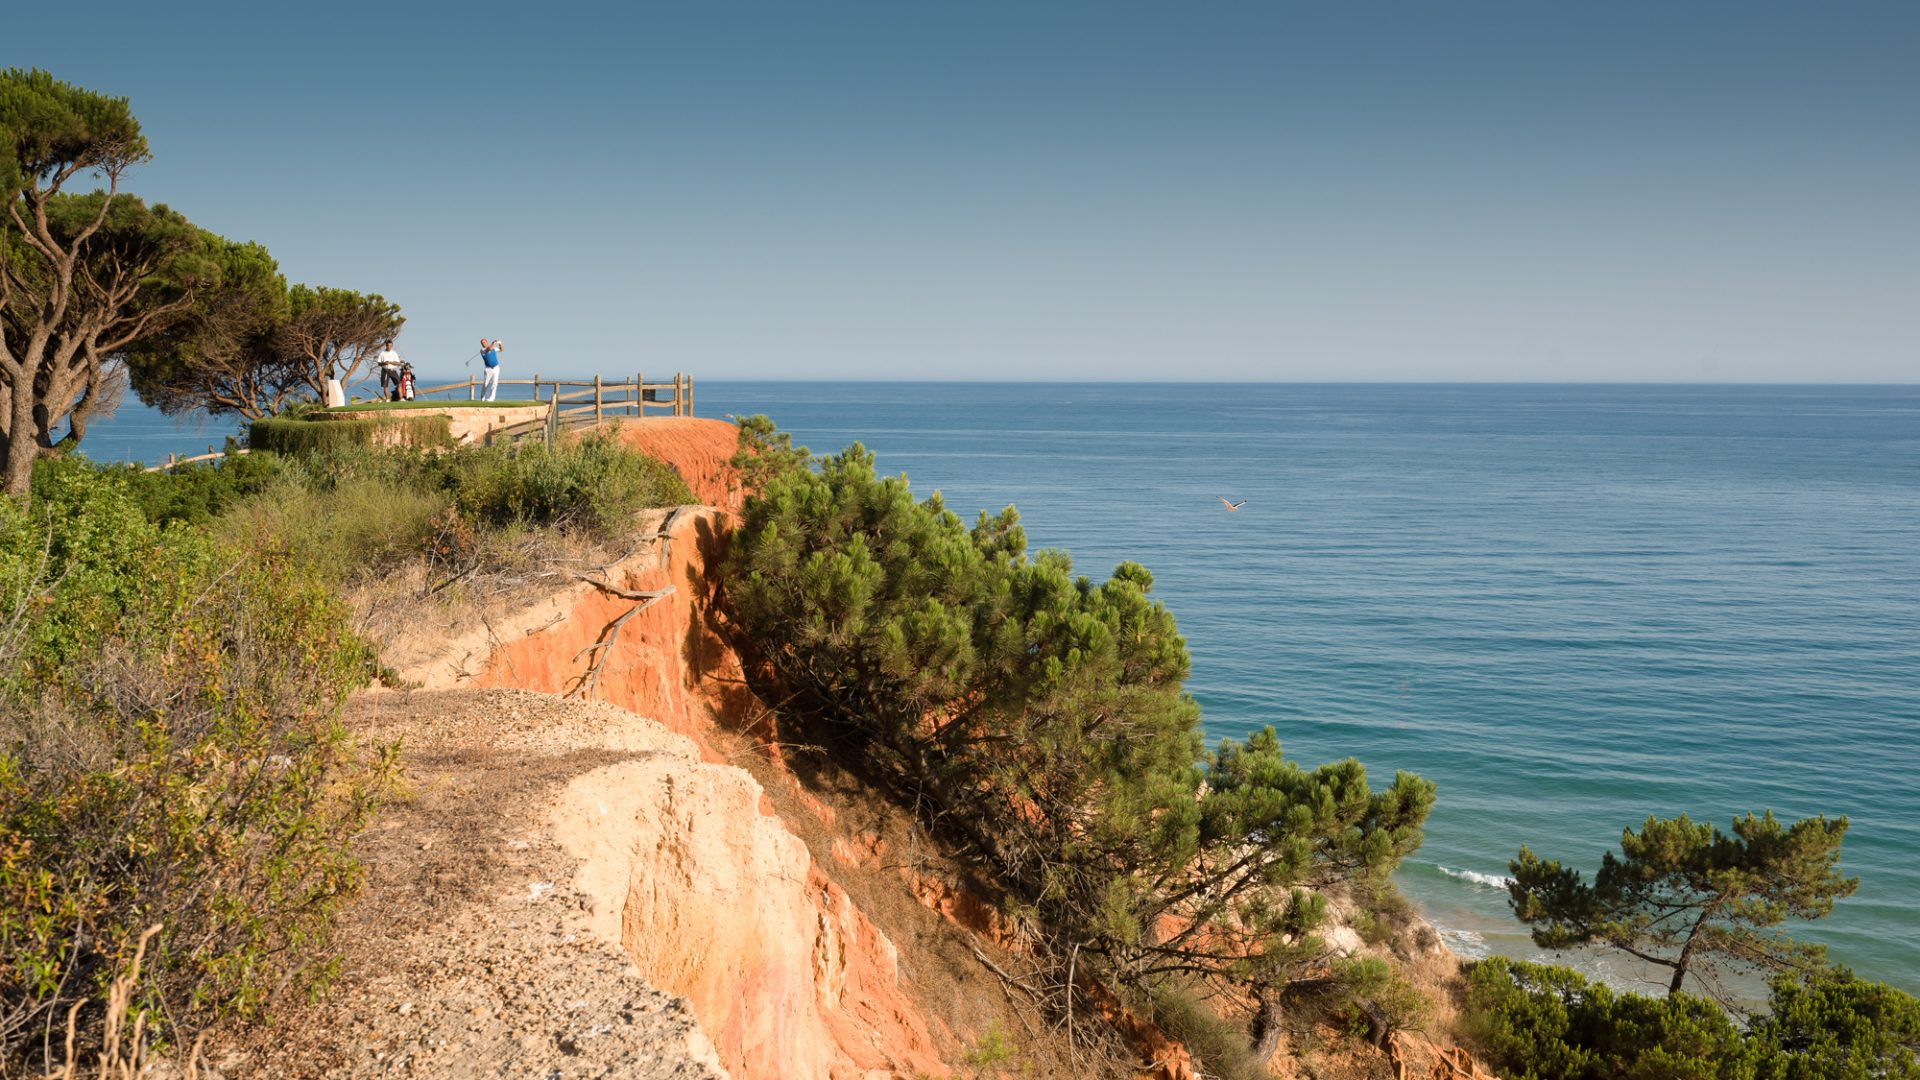 Golfreisen Algarve - Pine Cliffs Hotel, a Luxury Collection Resort, ehemals Hotel Sheraton Algarve